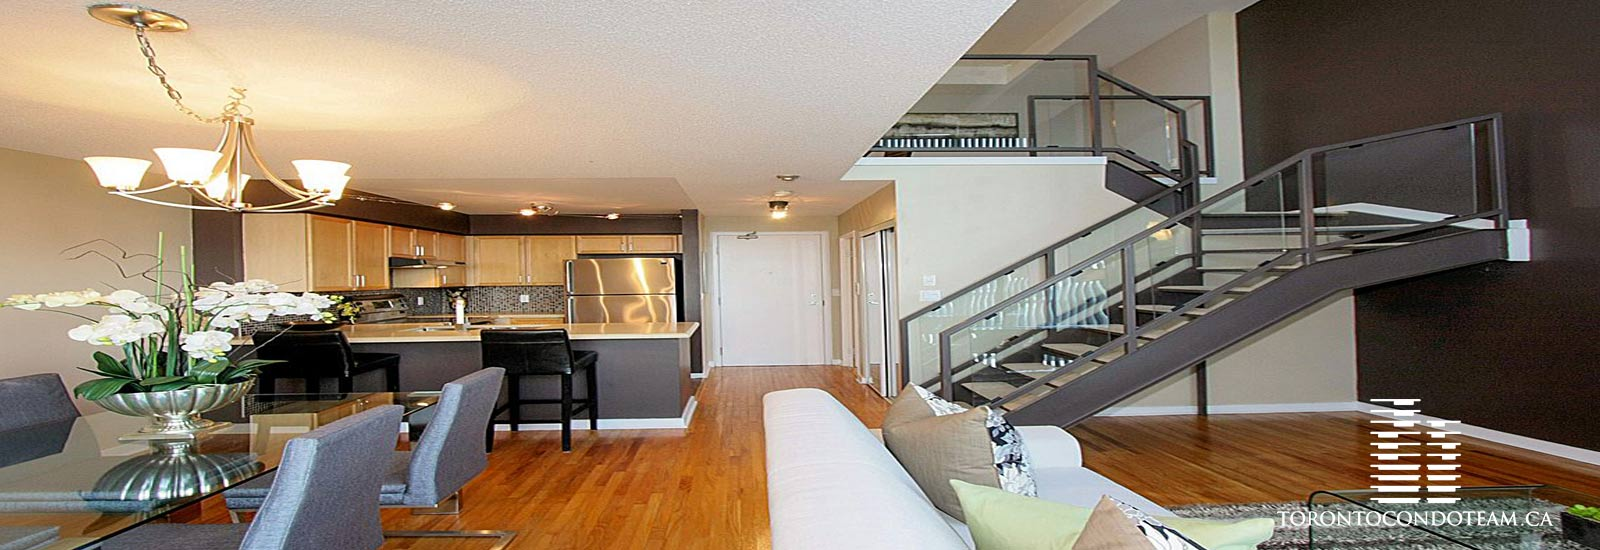 200-250 Manitoba Street Condos For Sale